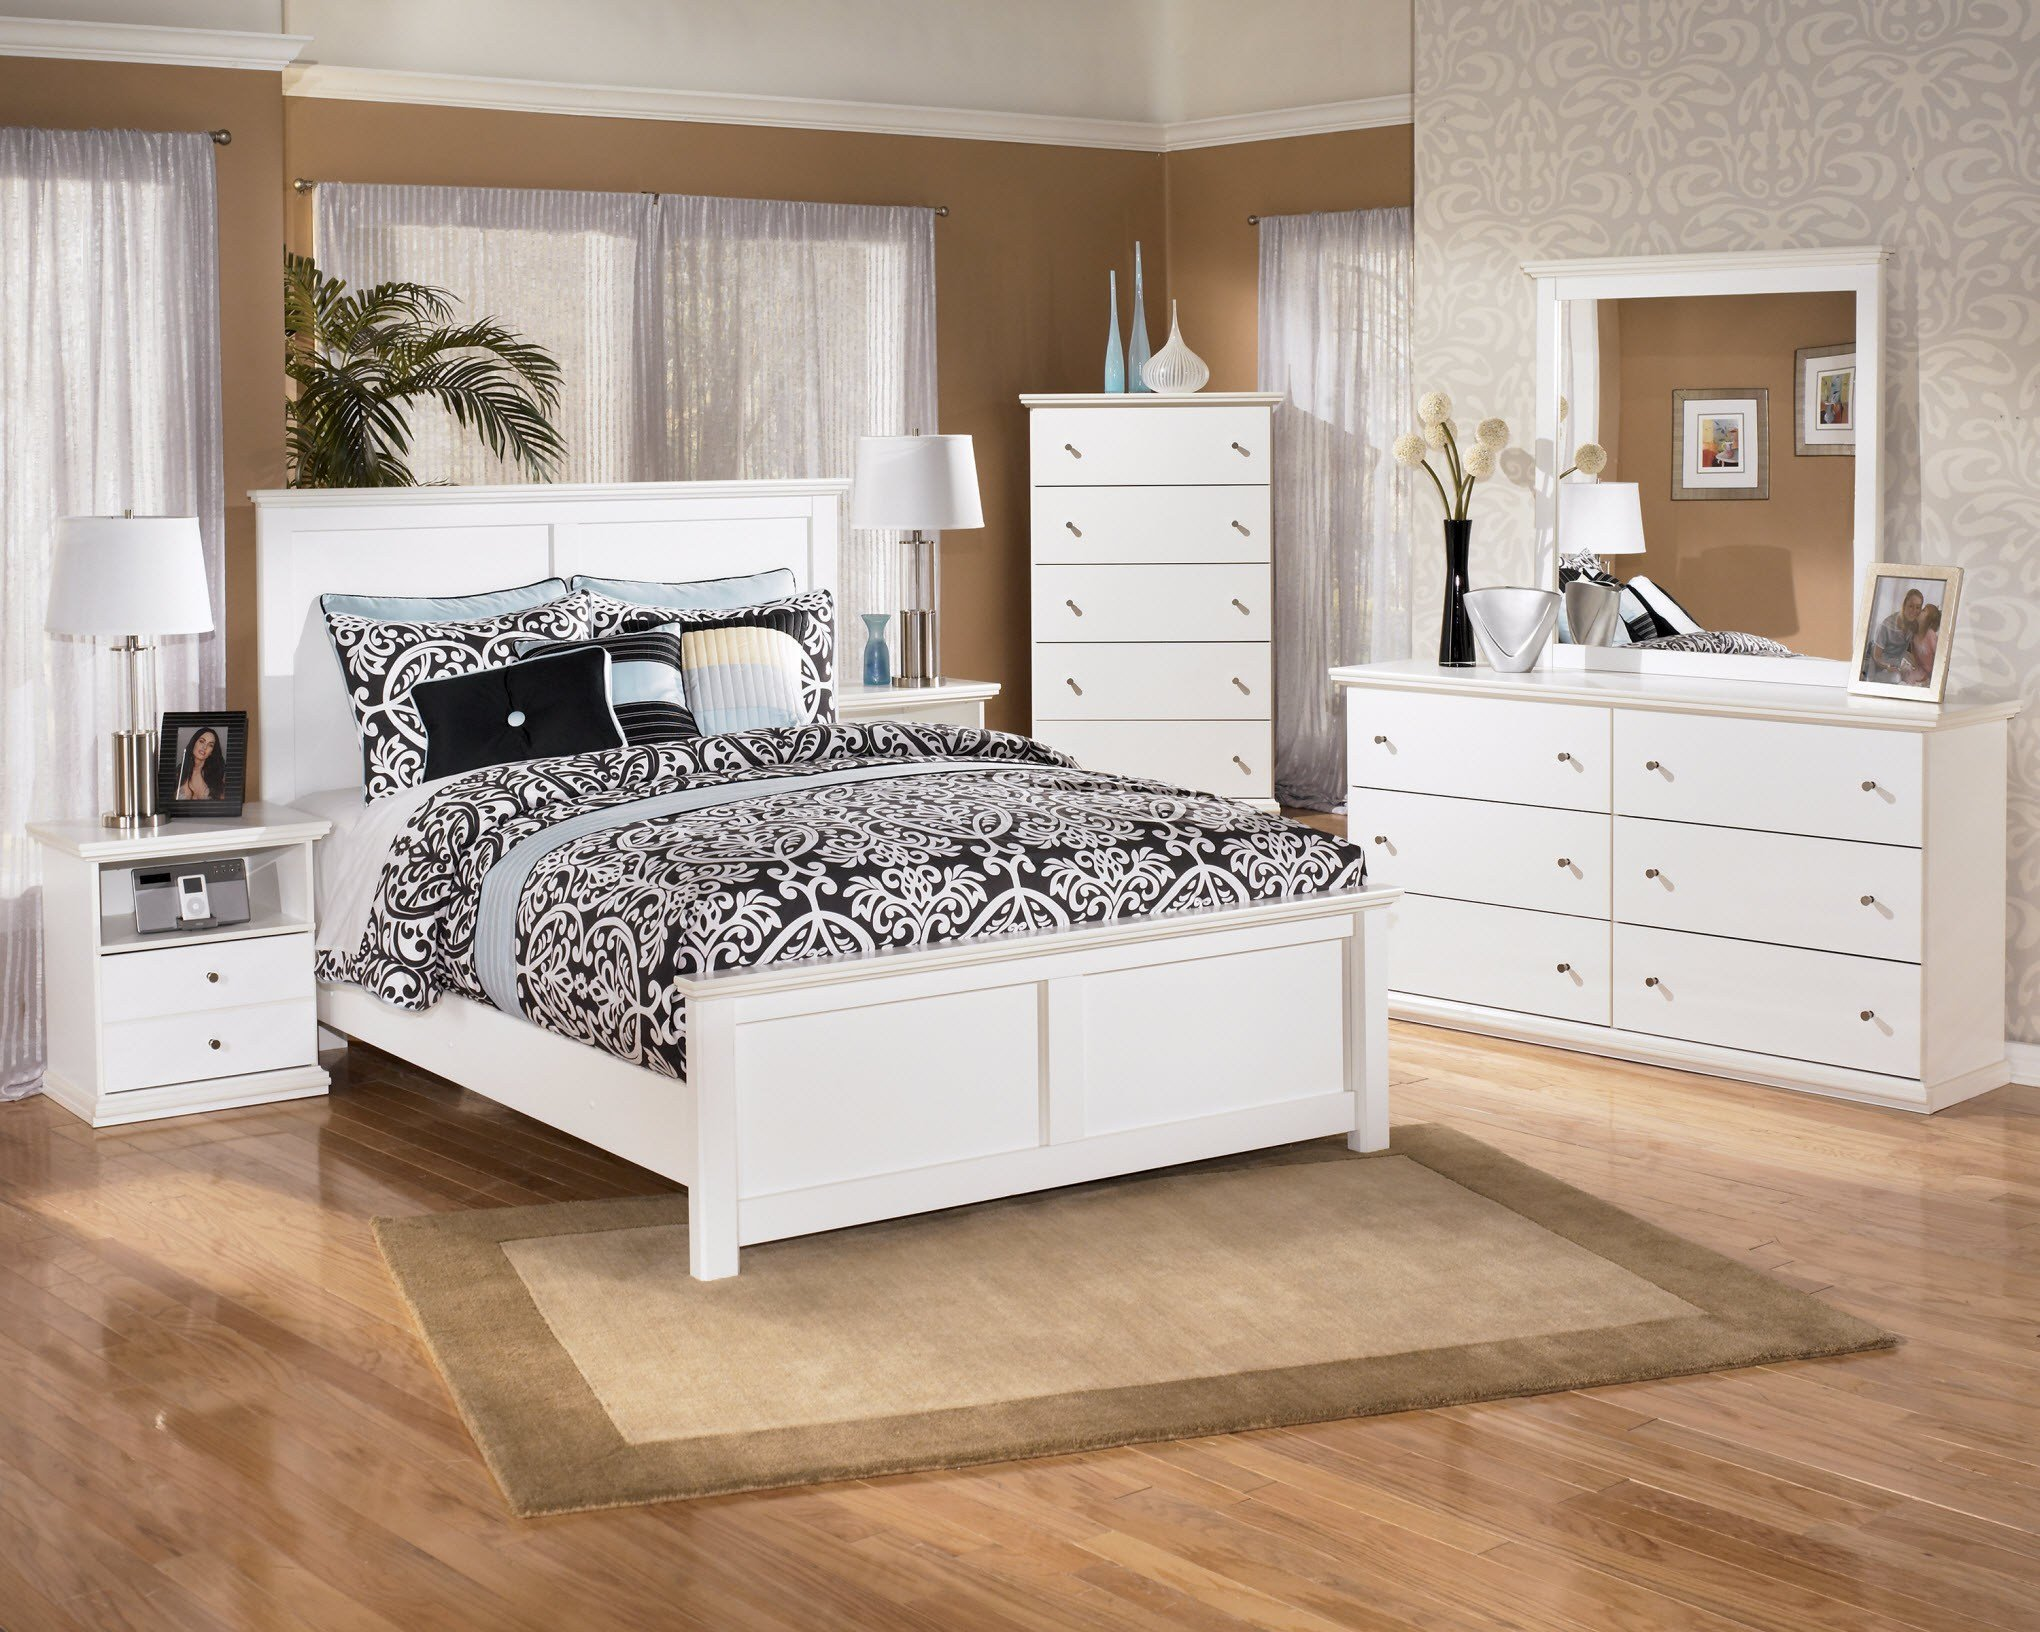 Best Bedroom Furniture Sets Prices In Pakistan Home Delightful With Pictures